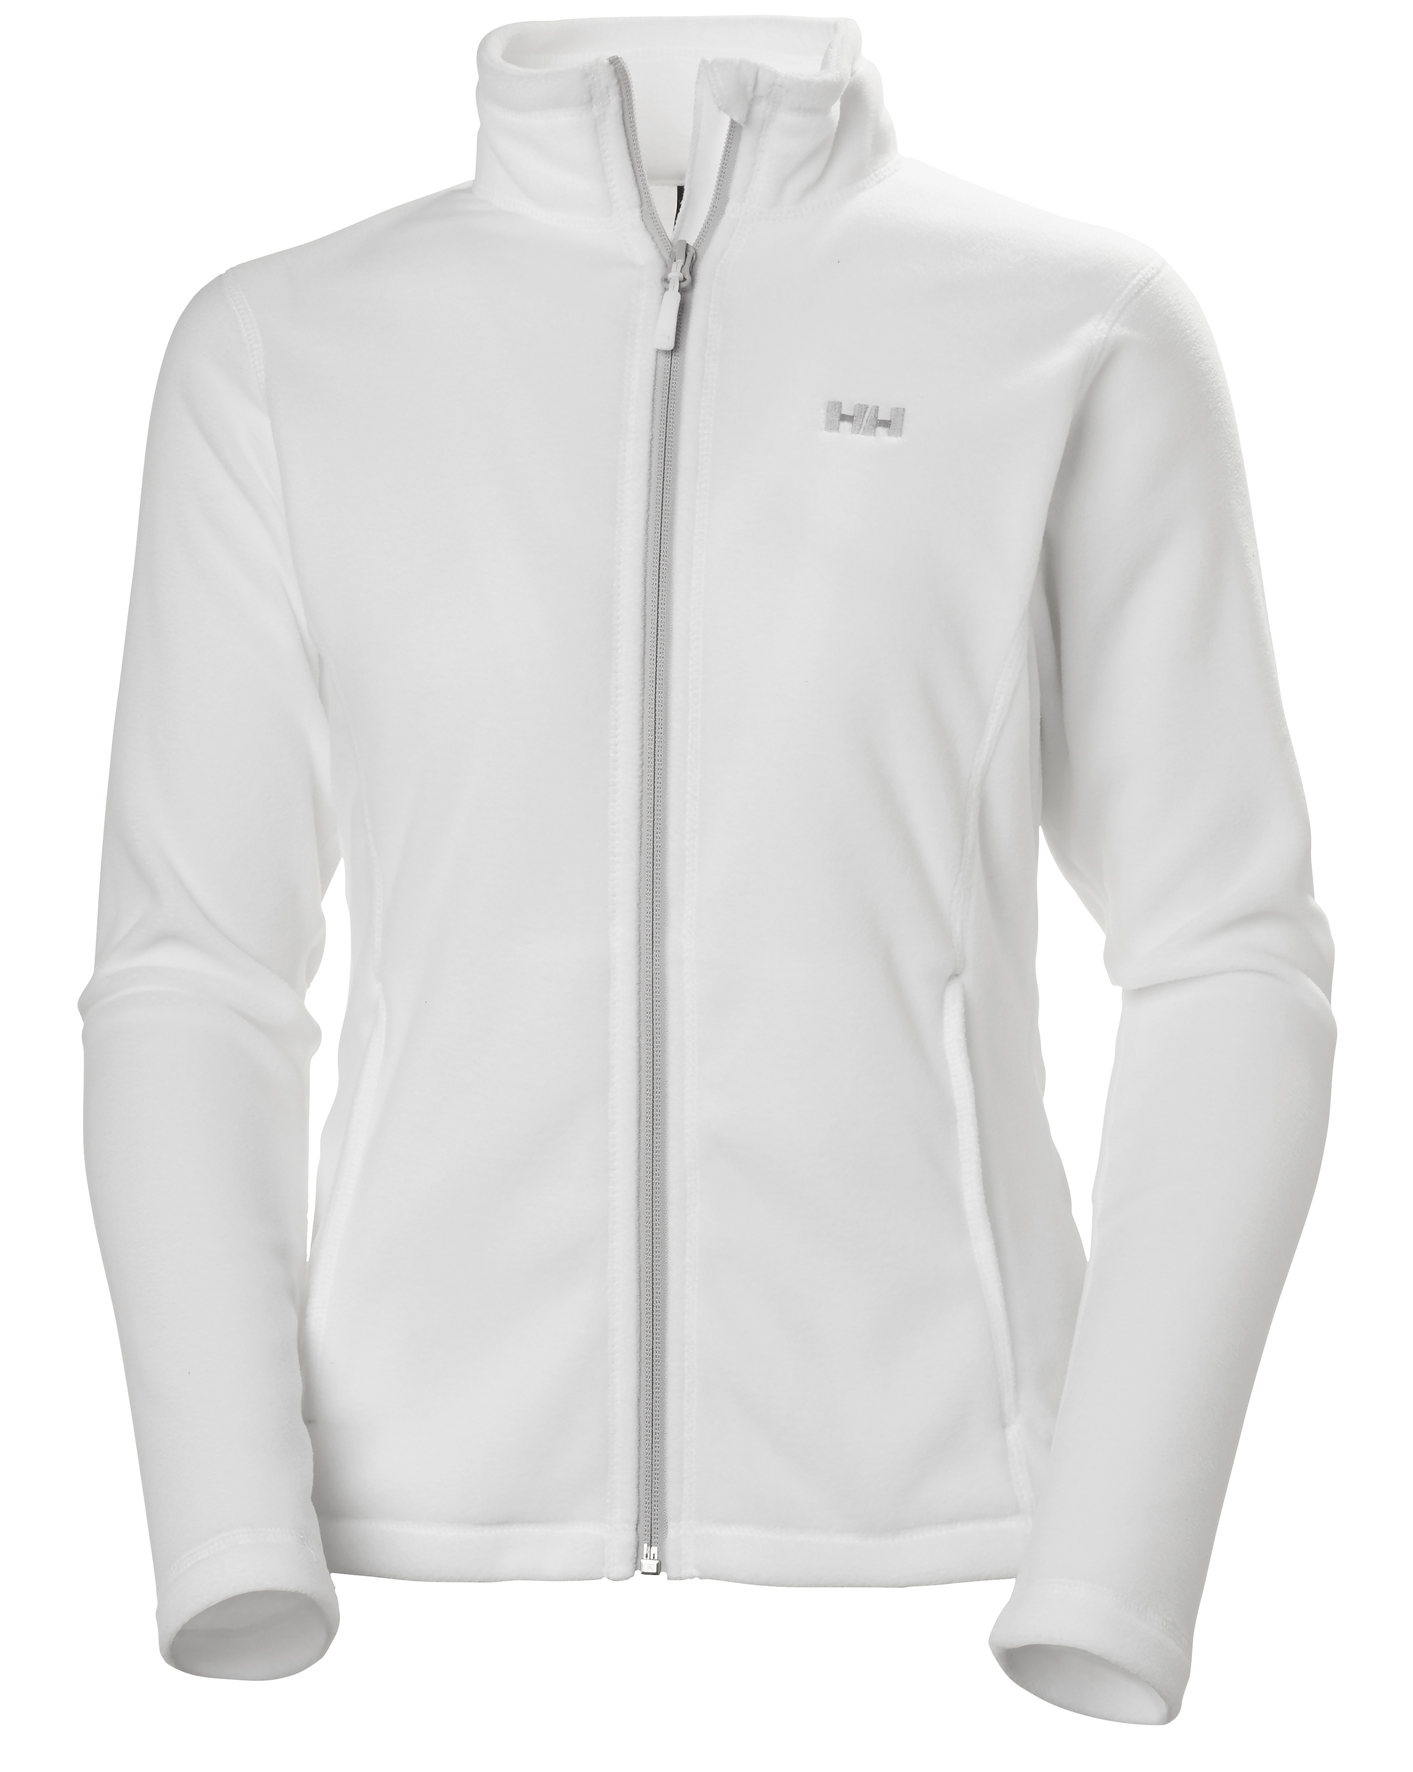 Helly Hansen - daybreaker fleece jacket women - white